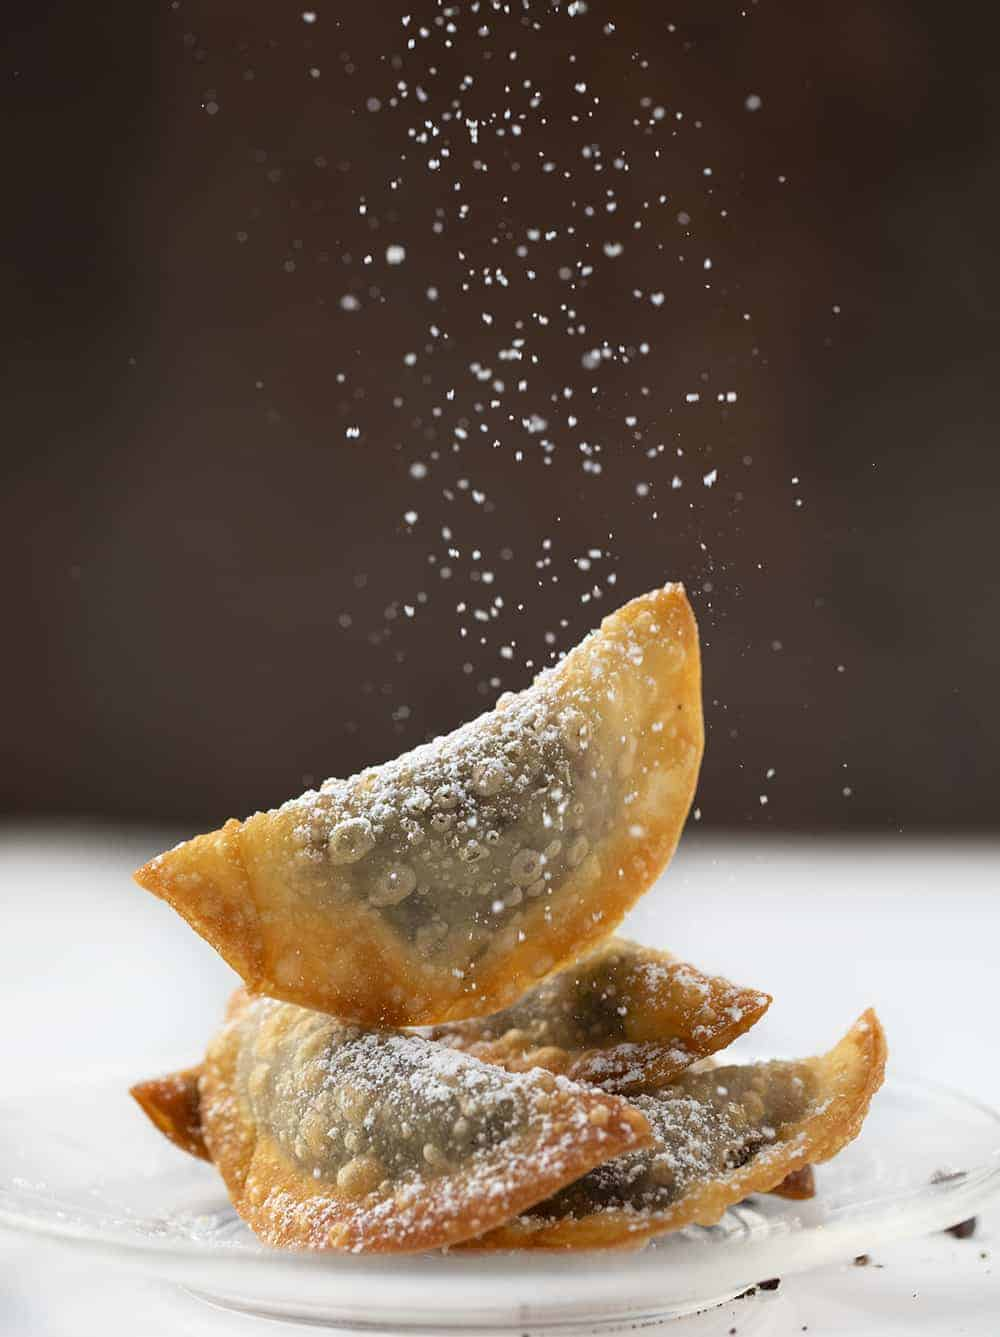 Sprinkling Confectioners Sugar over Deep Fried Oreo Wontons - Cookies and Cream Eggrolls